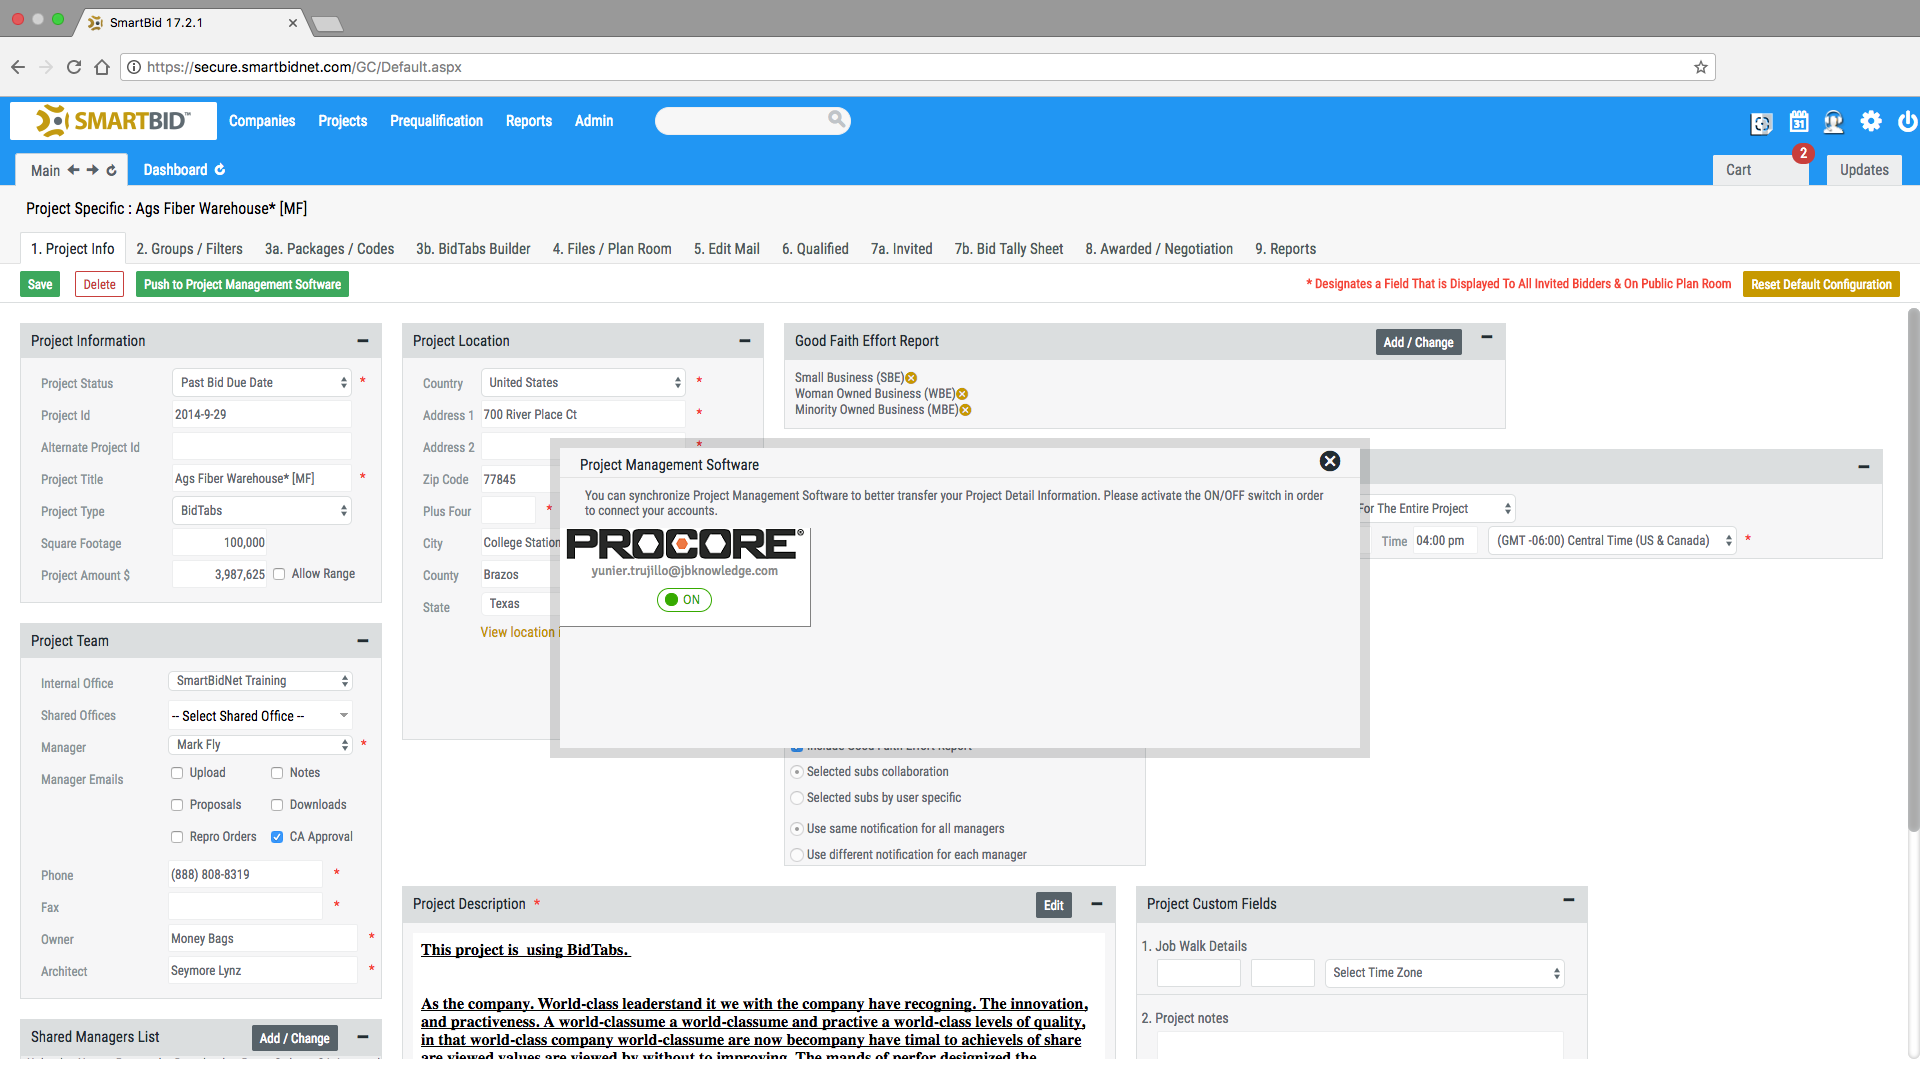 Sb screenshot procore integration 01